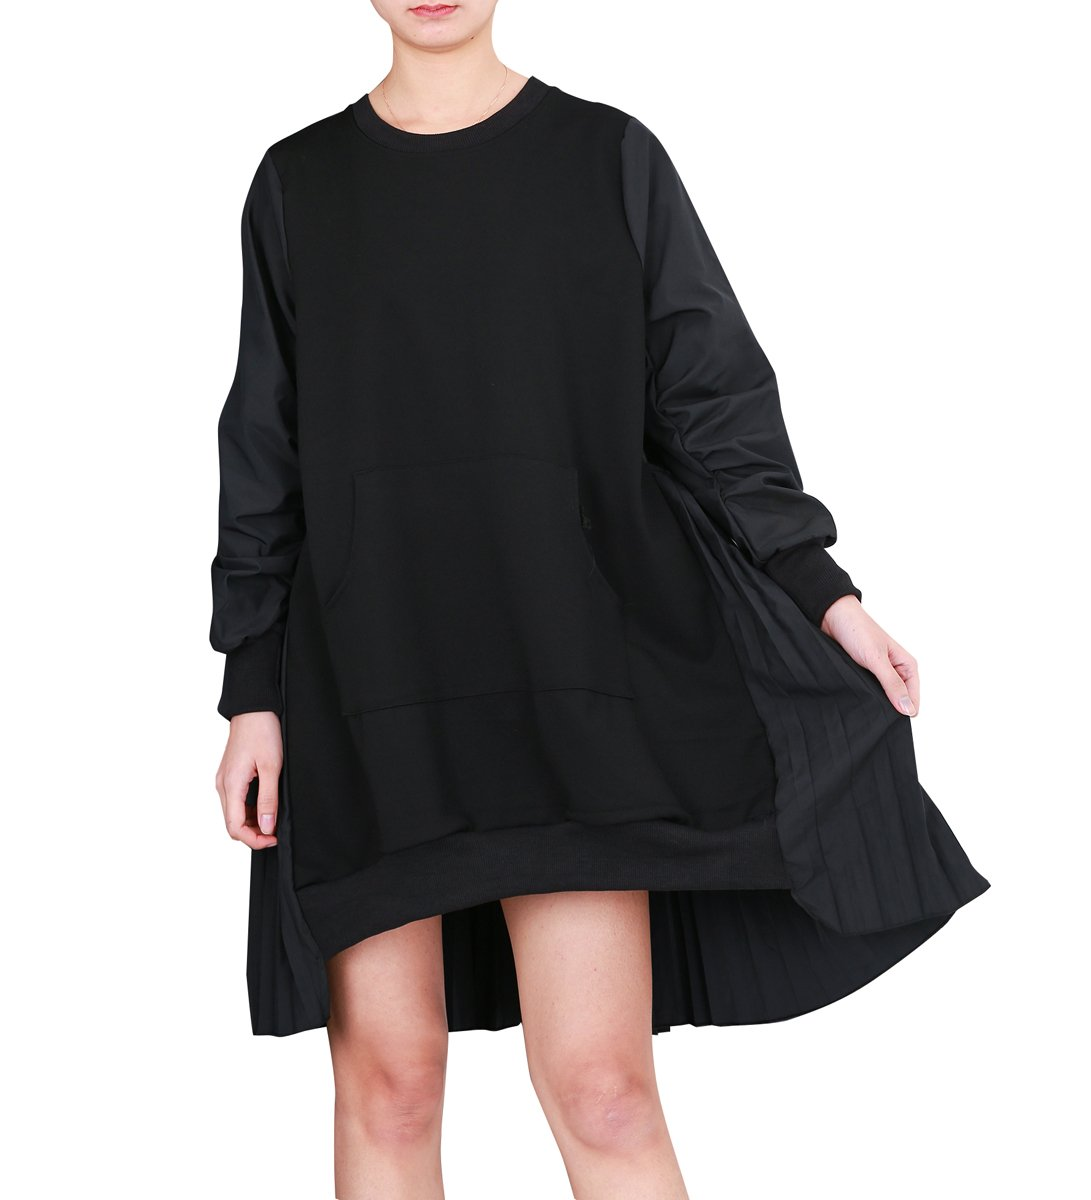 ELLAZHU Damen Mode Patchwork Sweatshirt Falten Locker Midi Kleid GY1487 GC GY1487 Black